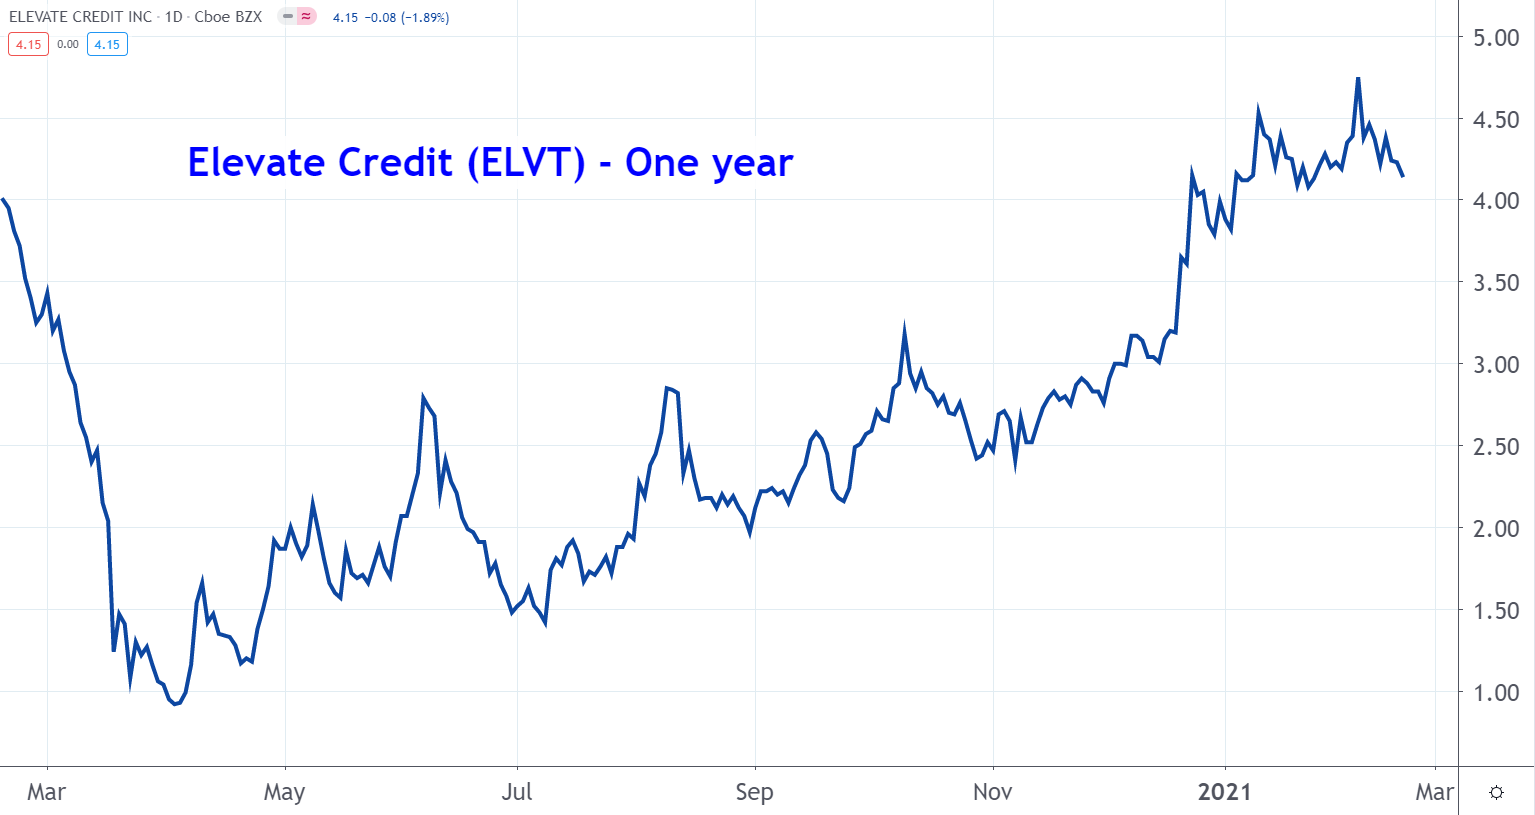 Line graph of Elevate Credit stock price from March 2020 to March 2021, showing a steady return to normalcy after a massive plummet in April